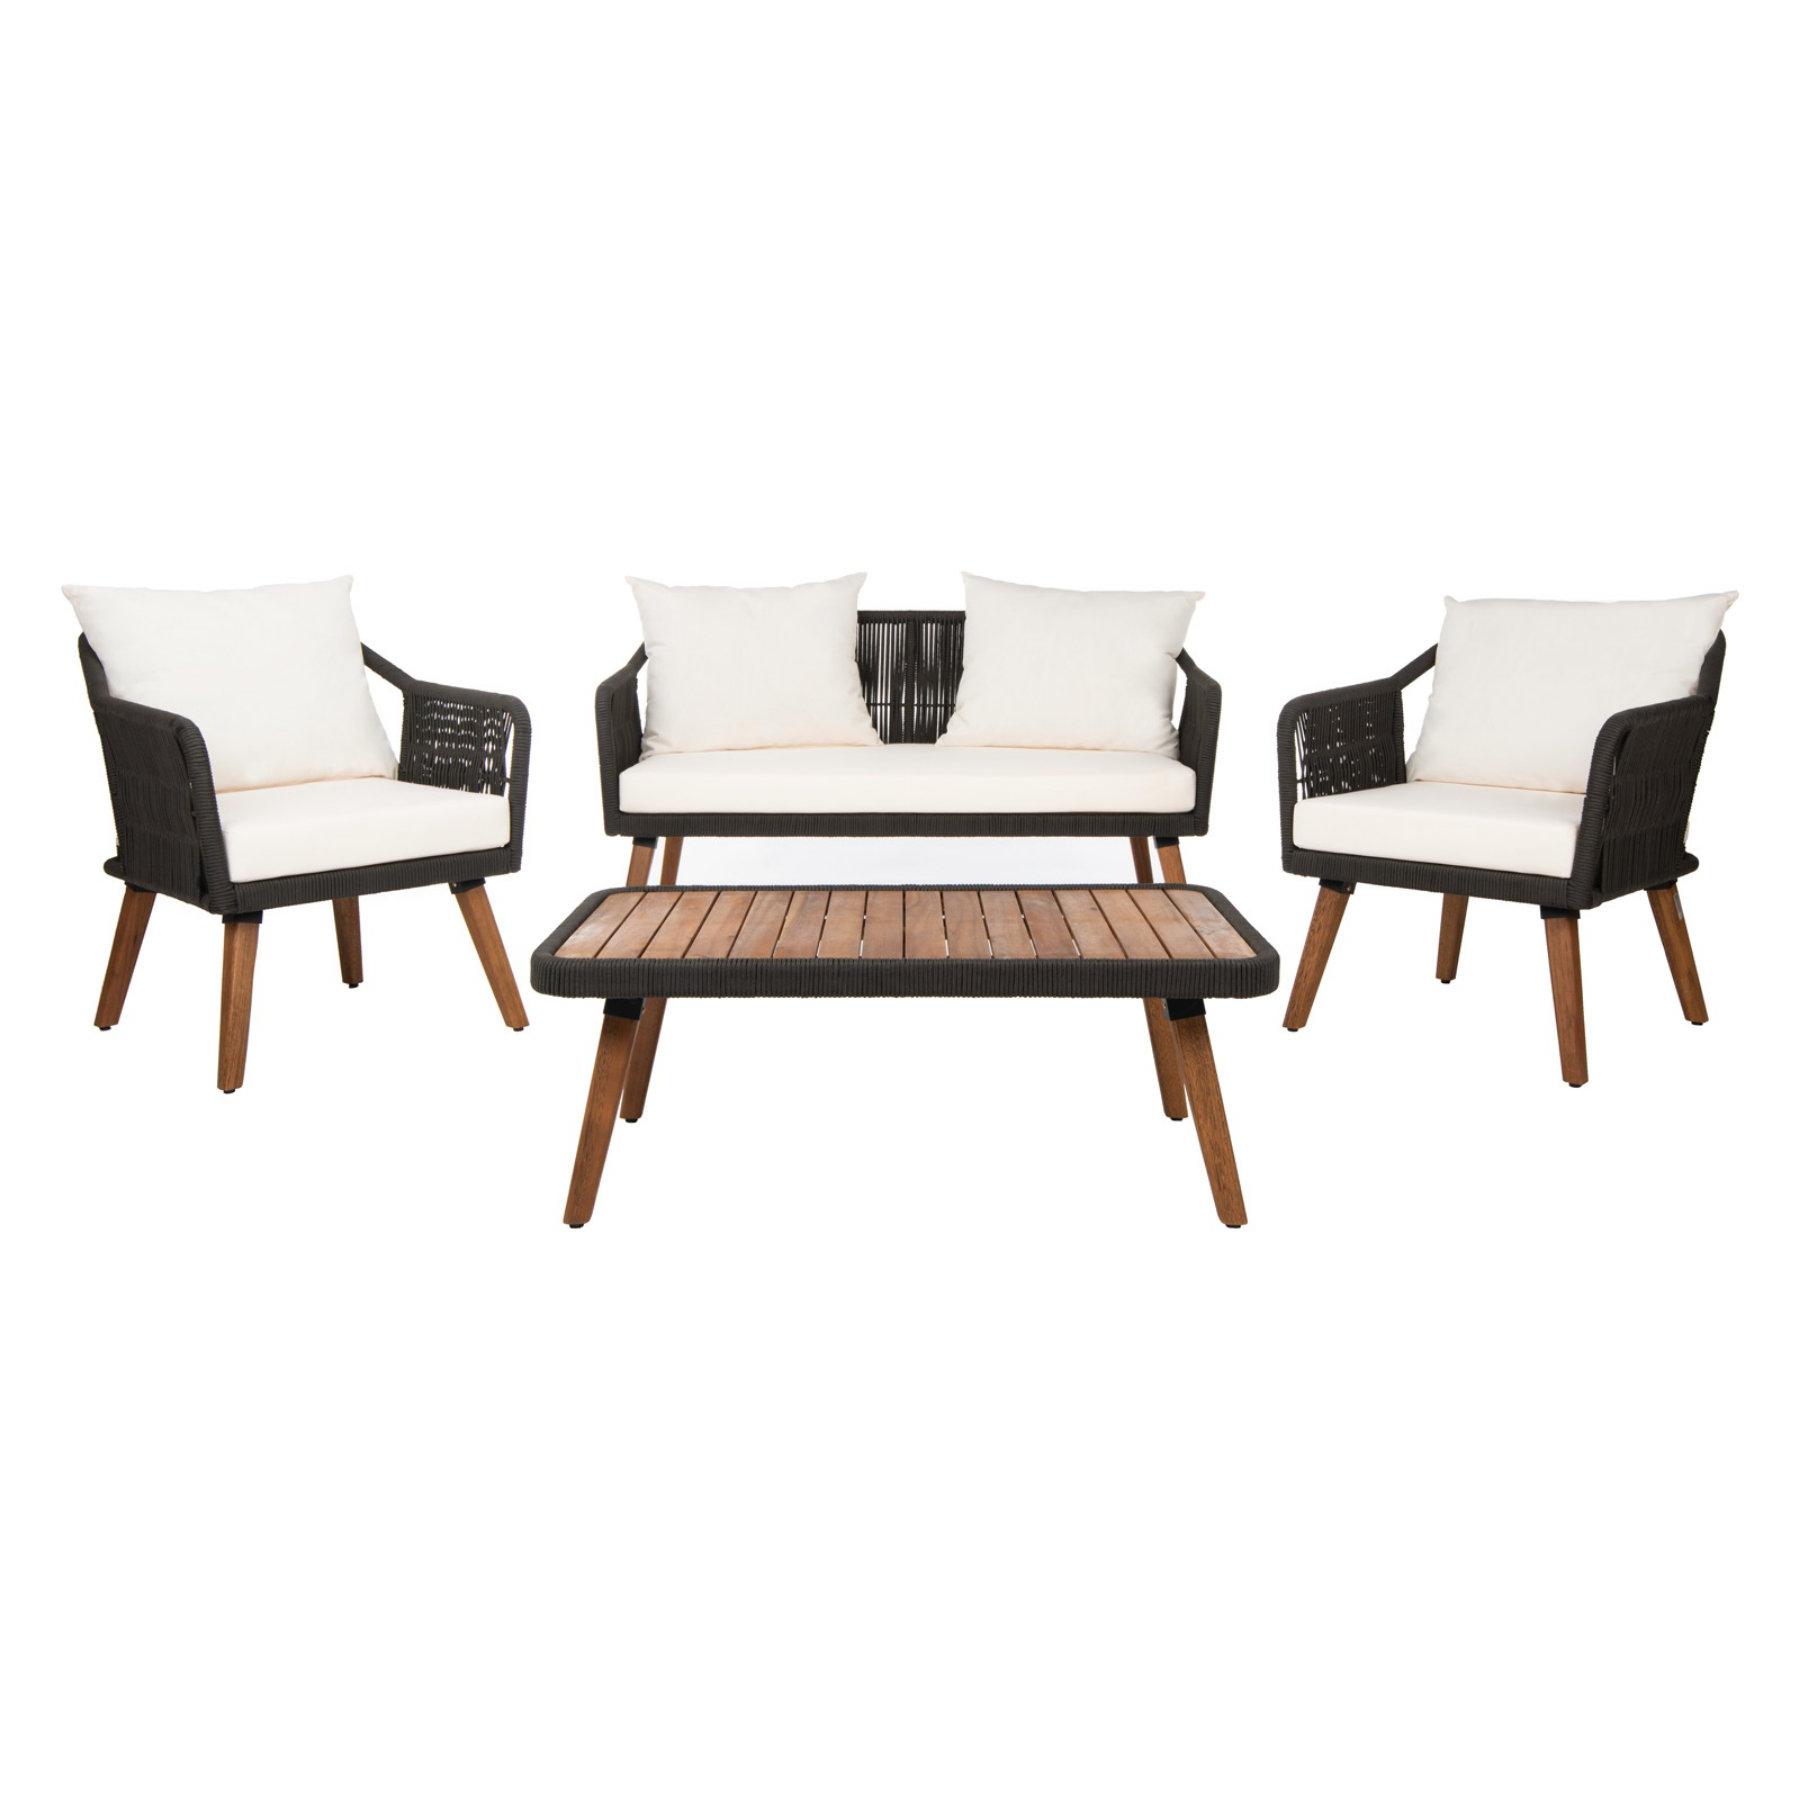 Purington Circular Patio Sectionals With Cushions Inside Newest Outdoor Safavieh Raldin Rope 4 Piece Patio Conversation Set (View 16 of 20)